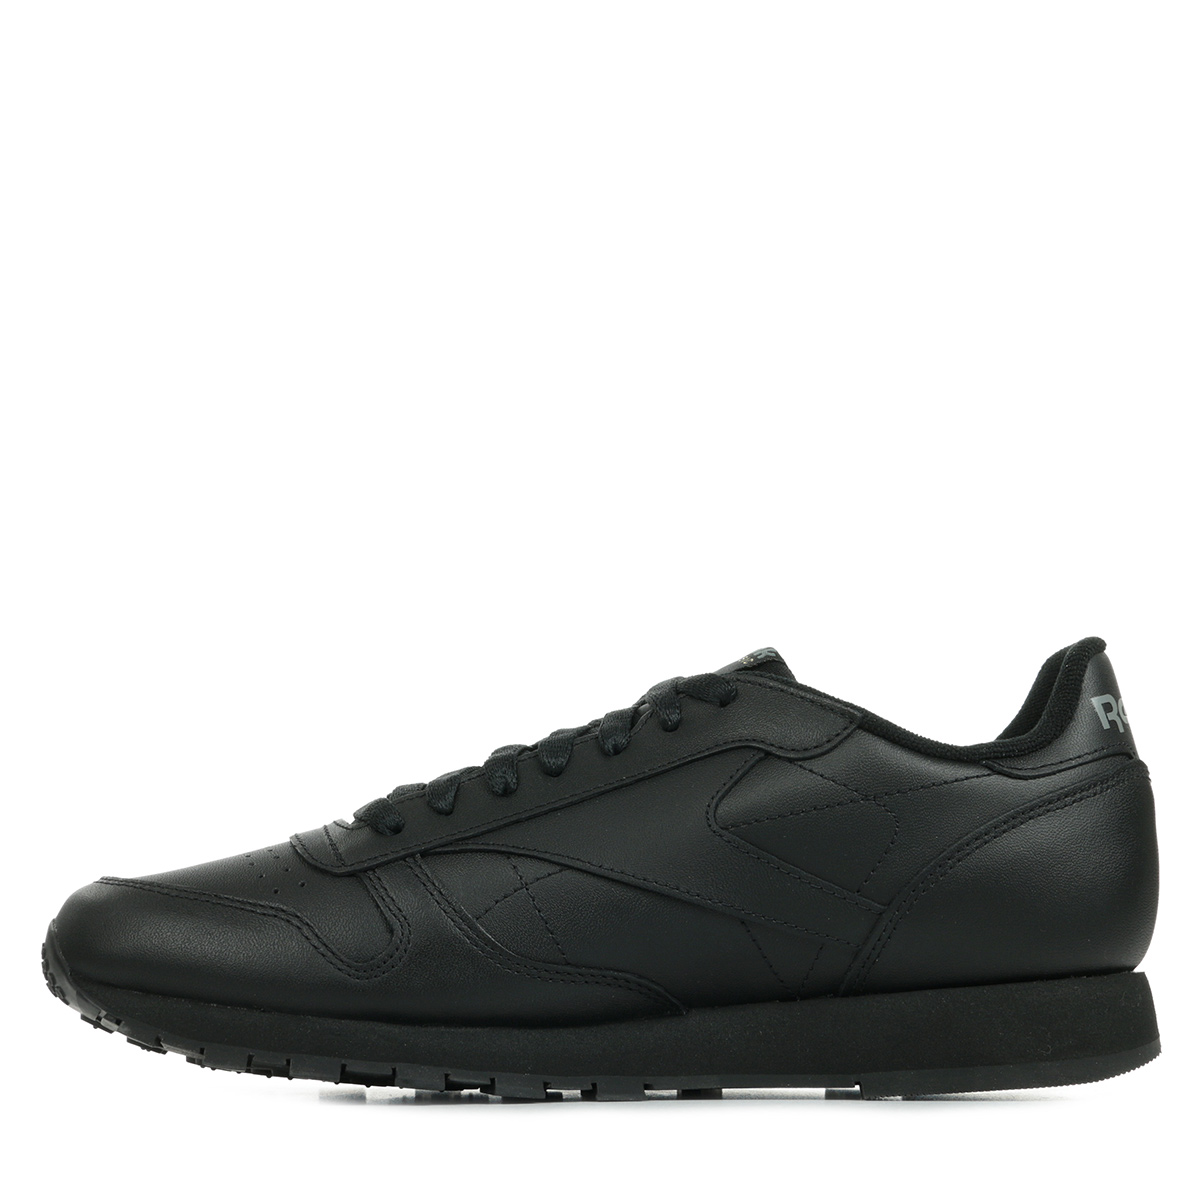 chaussures baskets reebok homme classic leather taille noir noire cuir lacets ebay. Black Bedroom Furniture Sets. Home Design Ideas